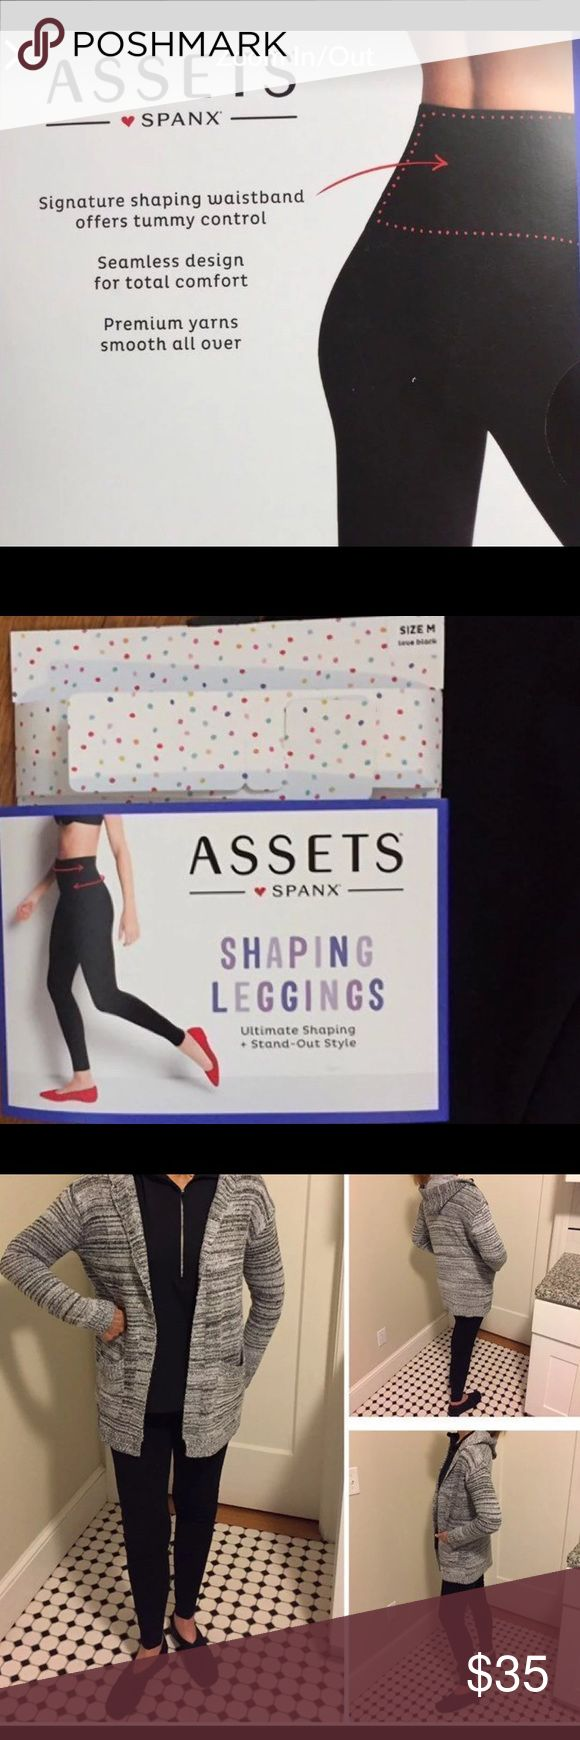 Assets by Spanx Black Leggings NWT Size M. Assets by Spanx Black Leggings NWT Size M. Tummy control. Smooth all over.  •••••This is a FIRM PRICE••••• Assets By Spanx Pants Leggings